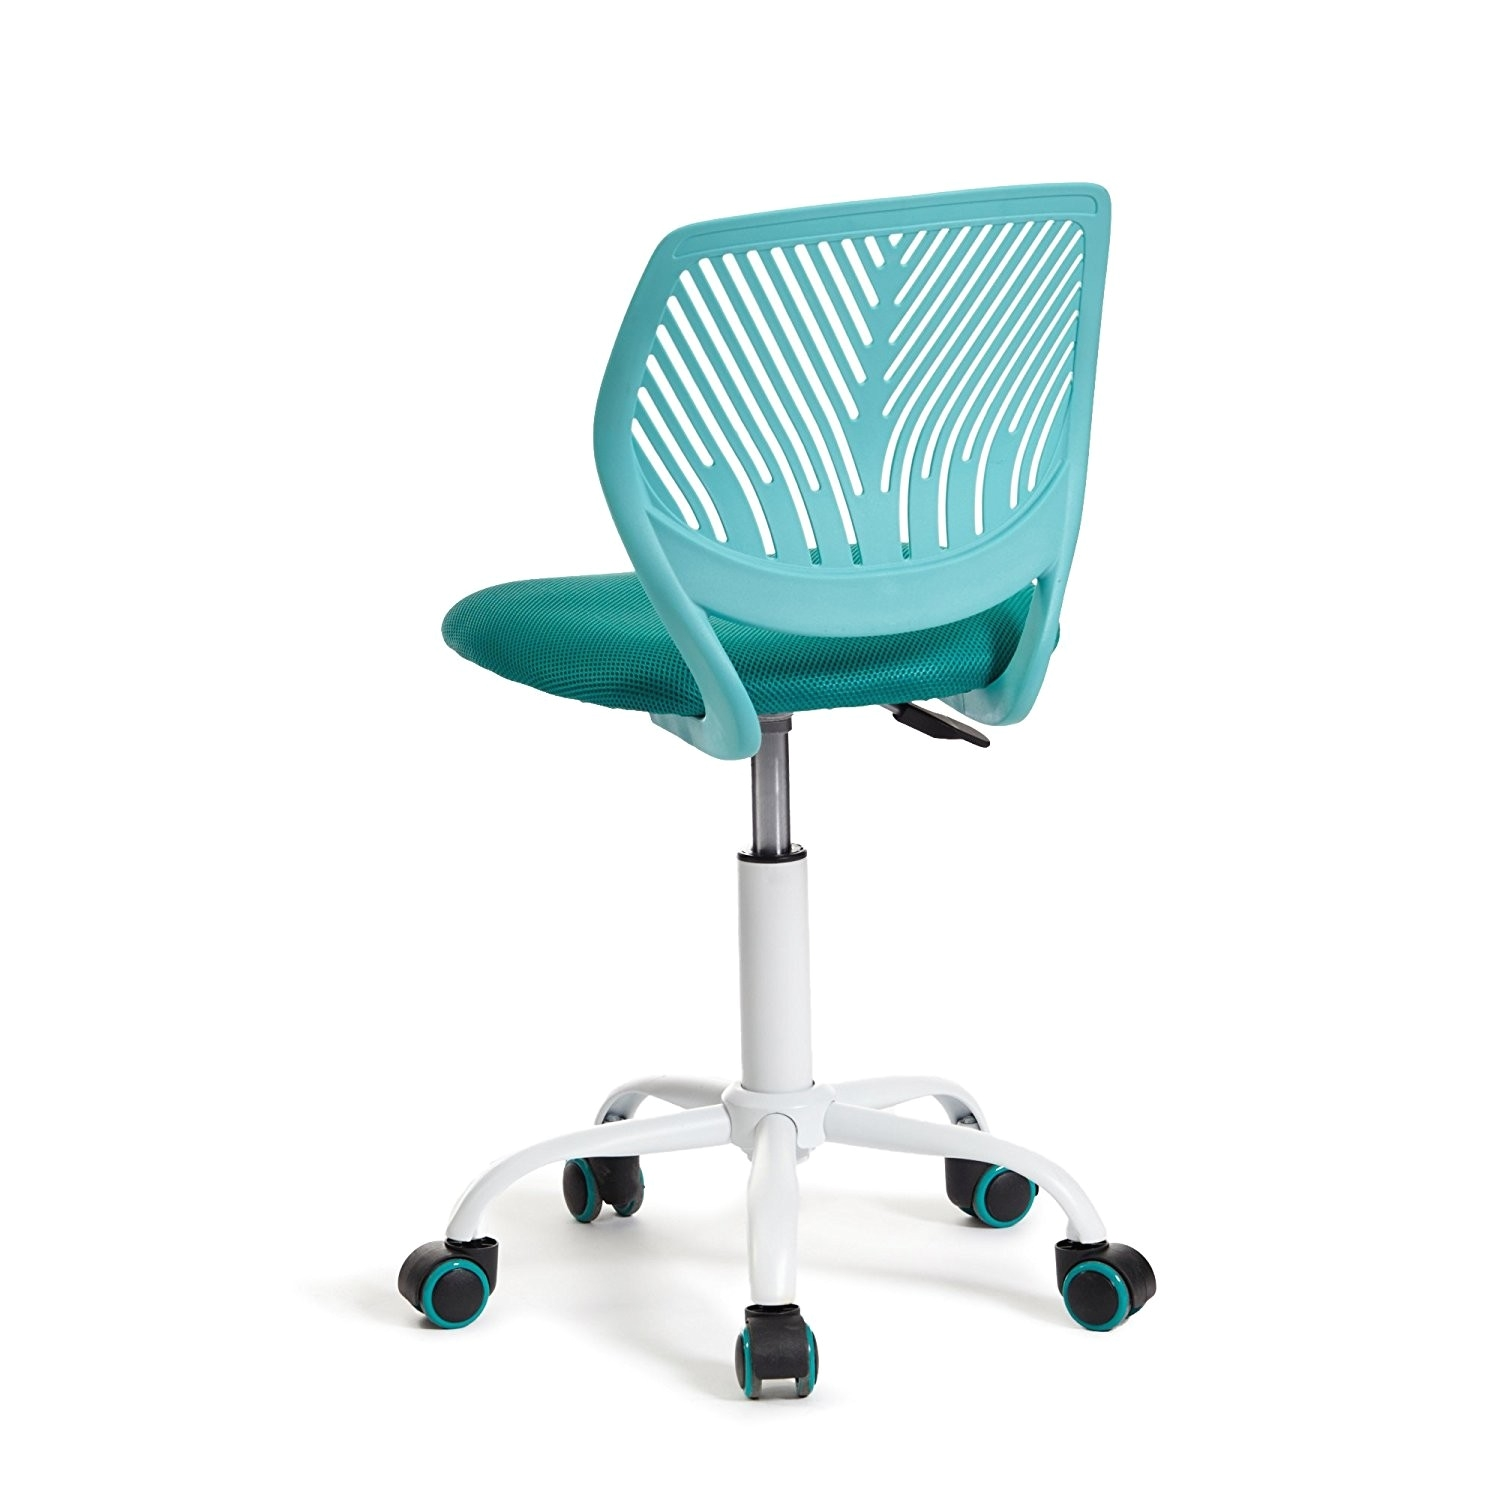 desk chair at walmart goodform aluminum navy teal bungee home design luxury puter